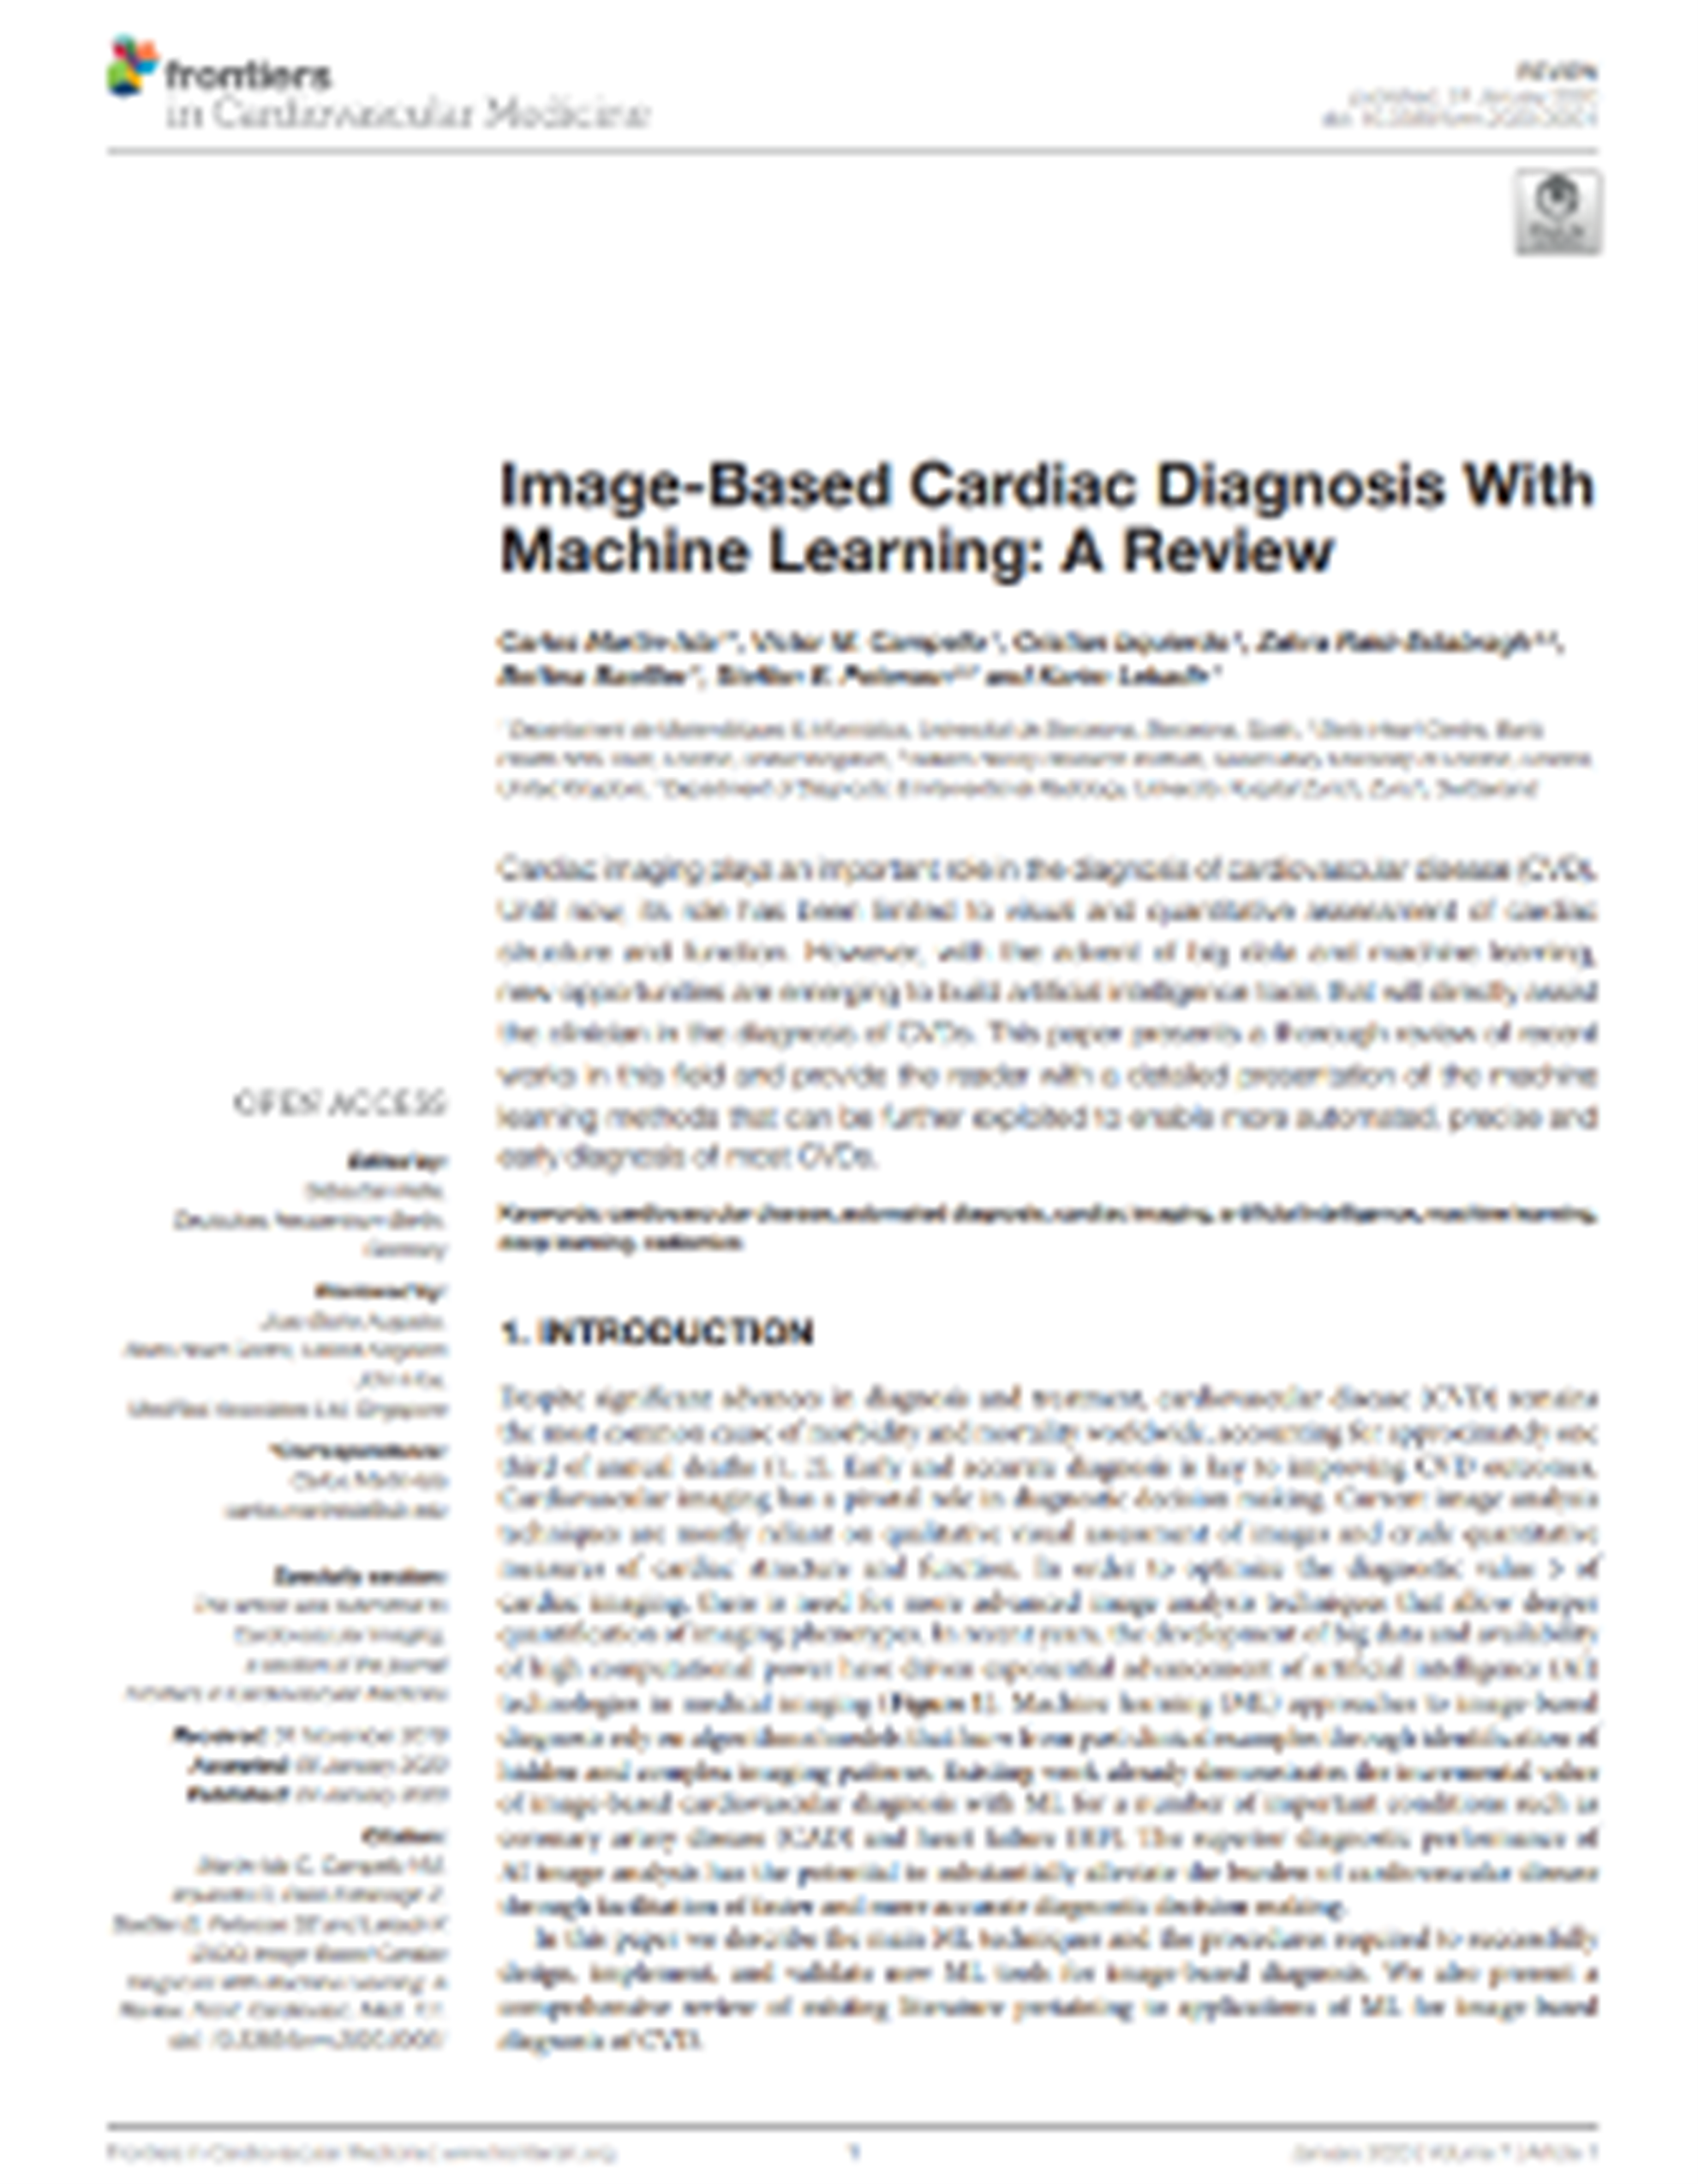 Image-Based Cardiac Diagnosis With Machine Learning: A Review